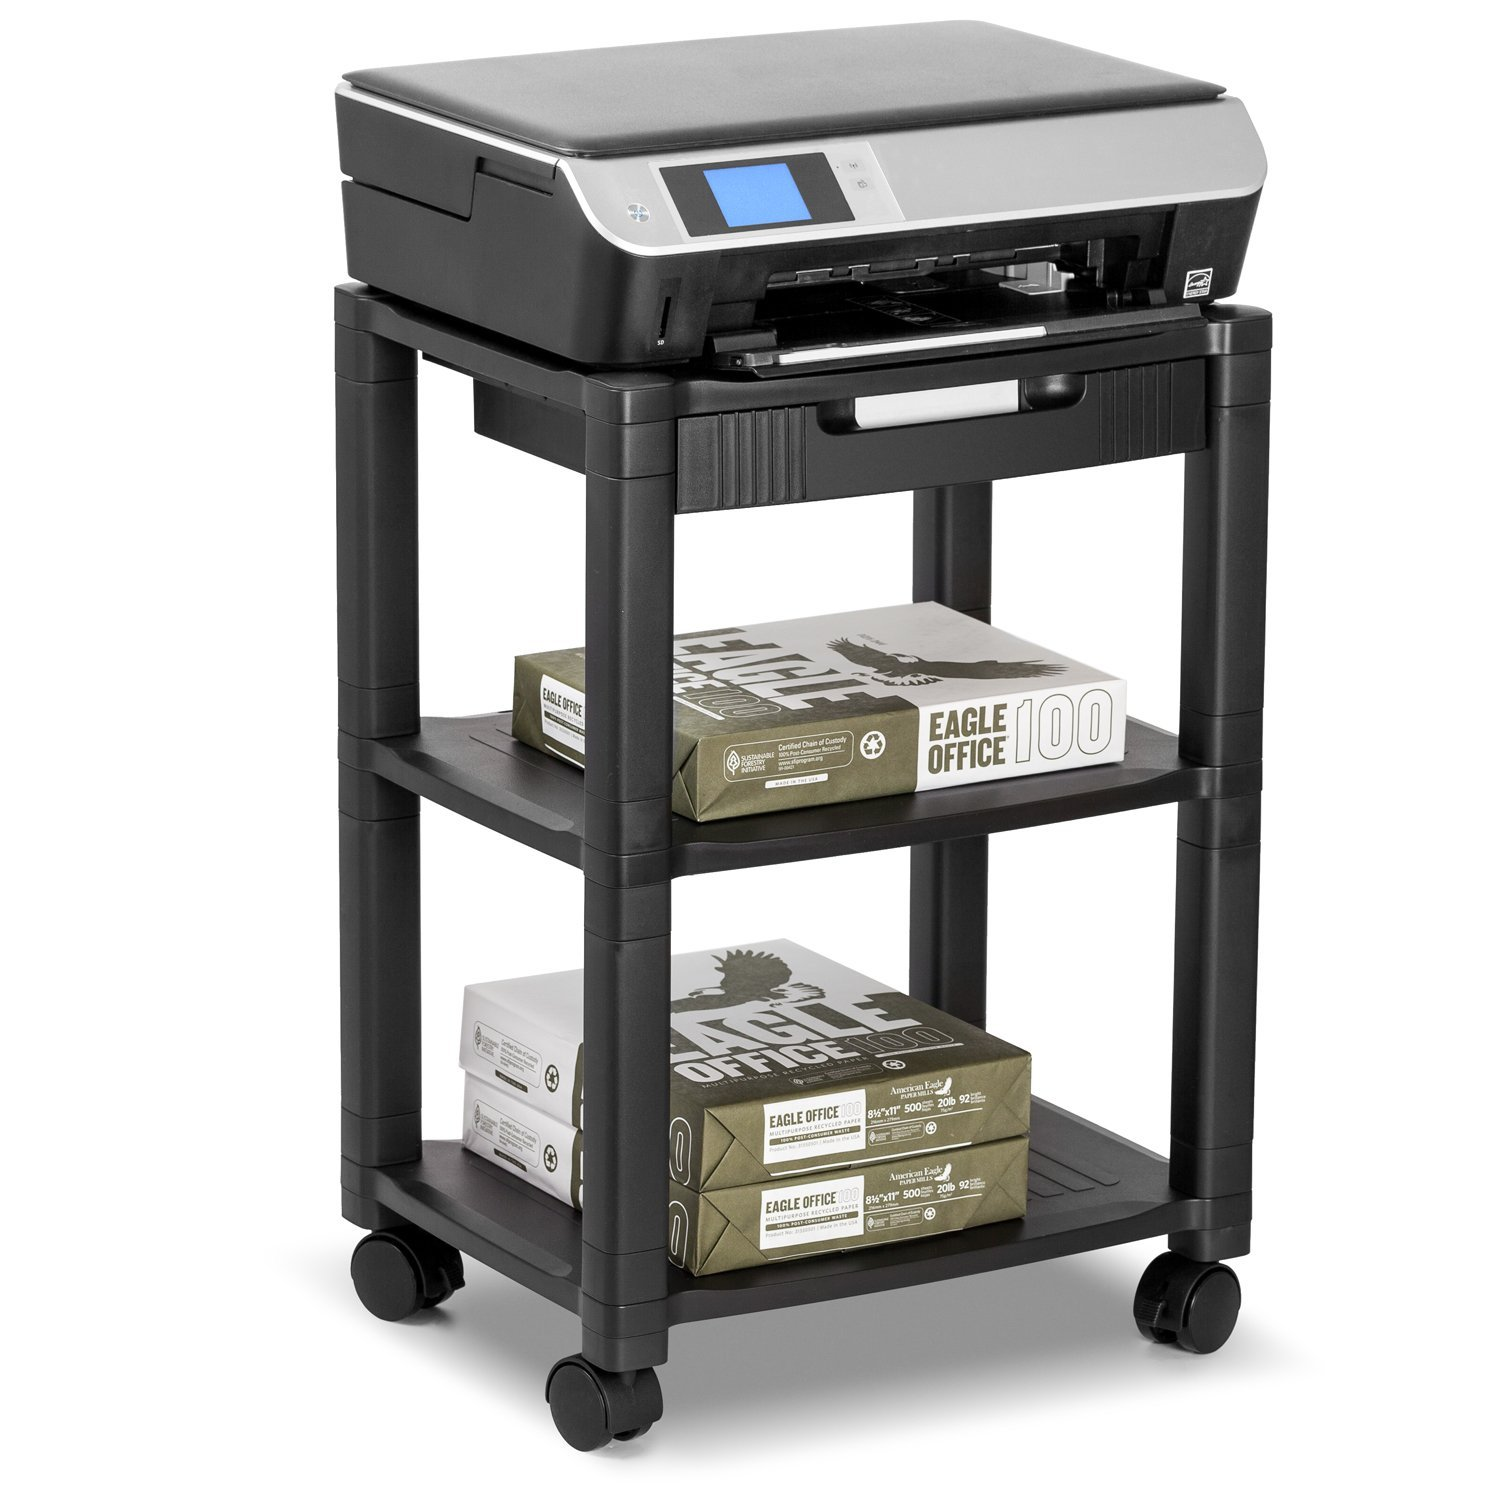 Halter Lz-308 Rolling Printer Cart Machine Stand With Cable Management - Hold.. 12